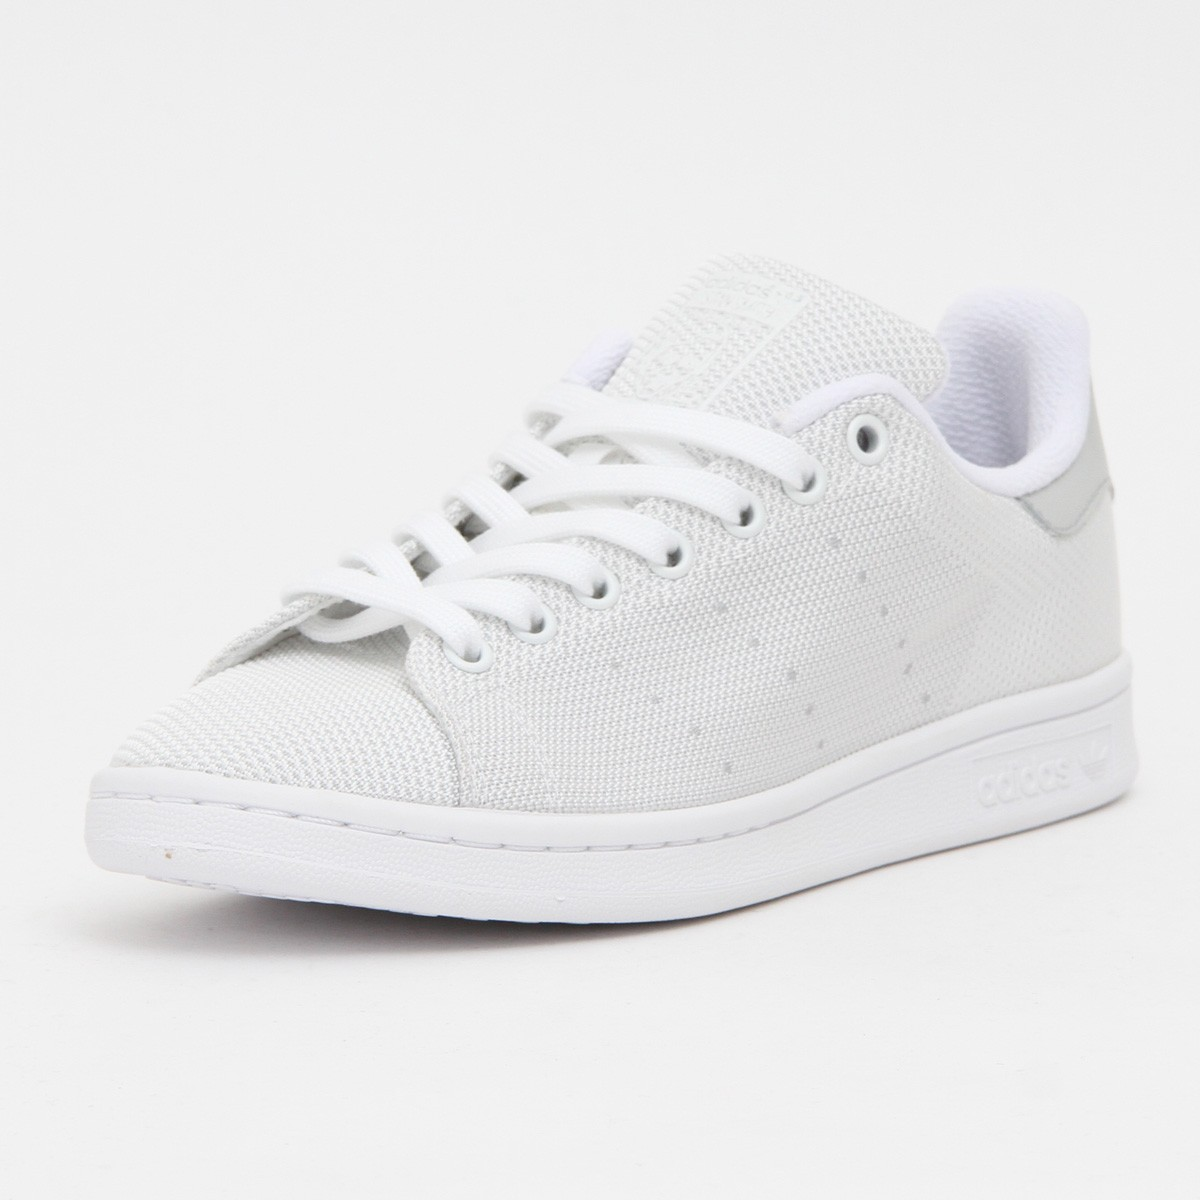 Adidas Stan Smith Light Grey